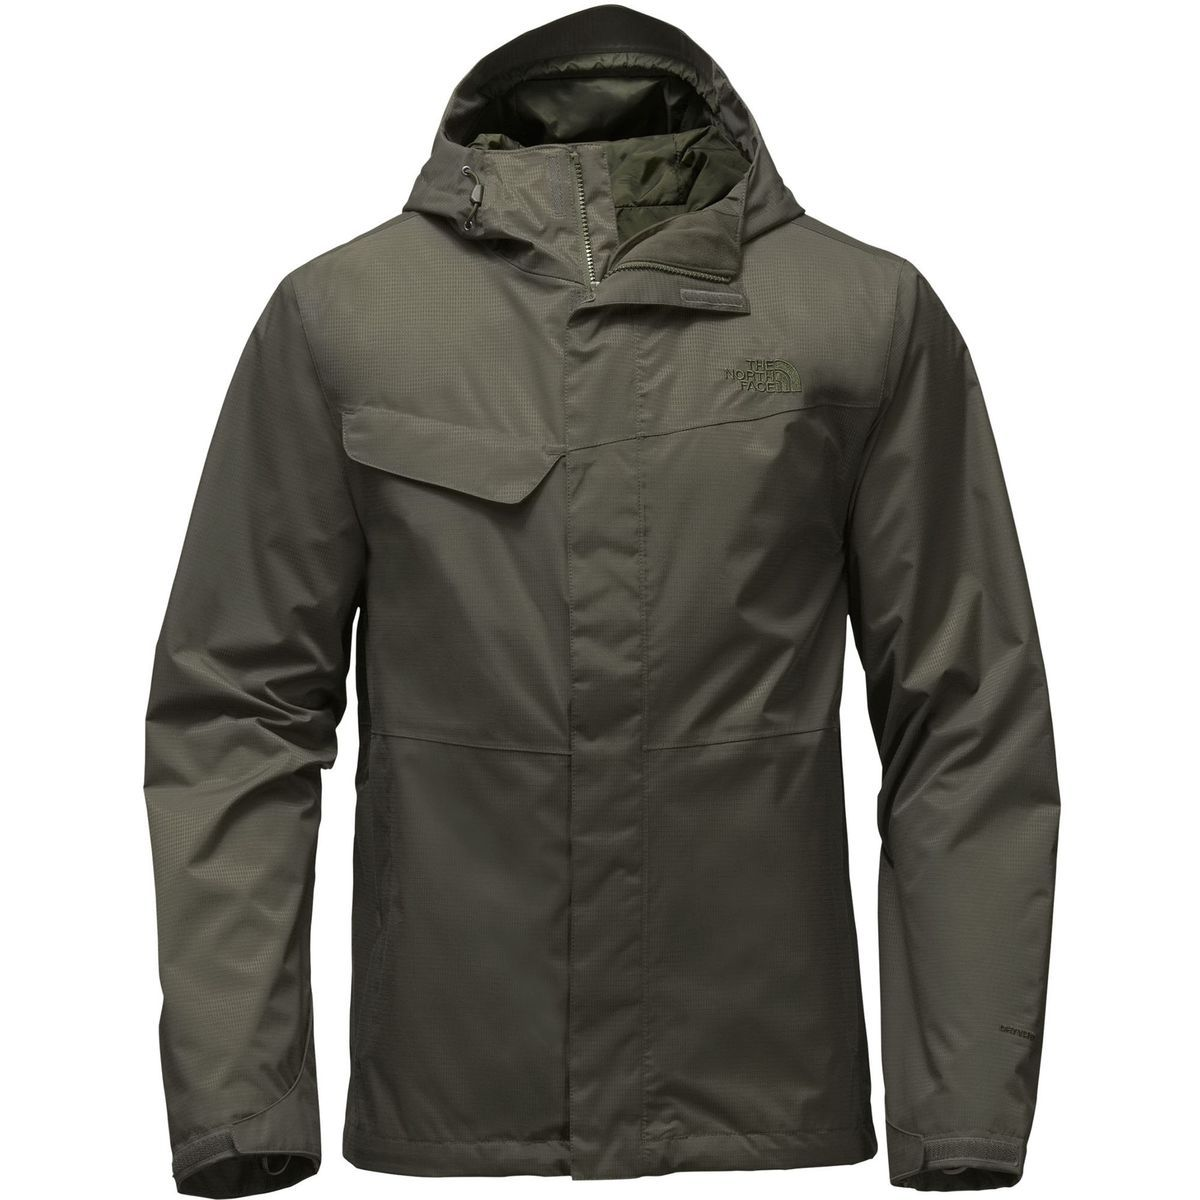 a5e6a6fca The North Face Beswick 3-in-1 Triclimate Jacket Climbing Ivy Green ...